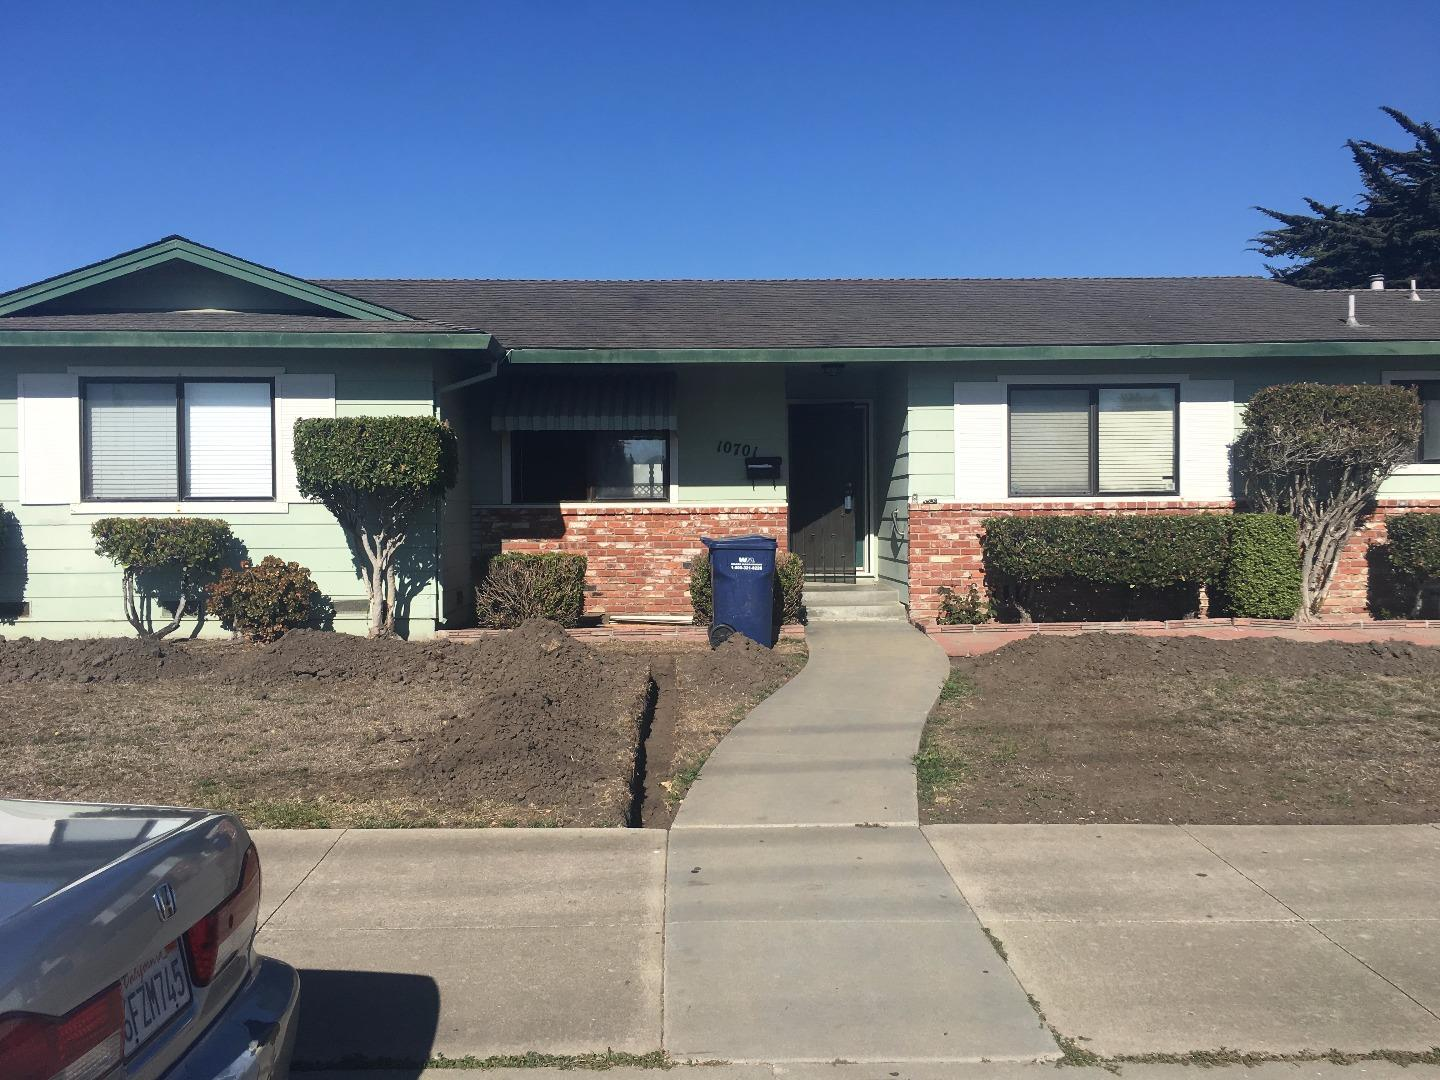 Single Family Home for Sale at 10701 Seymour Street 10701 Seymour Street Castroville, California 95012 United States